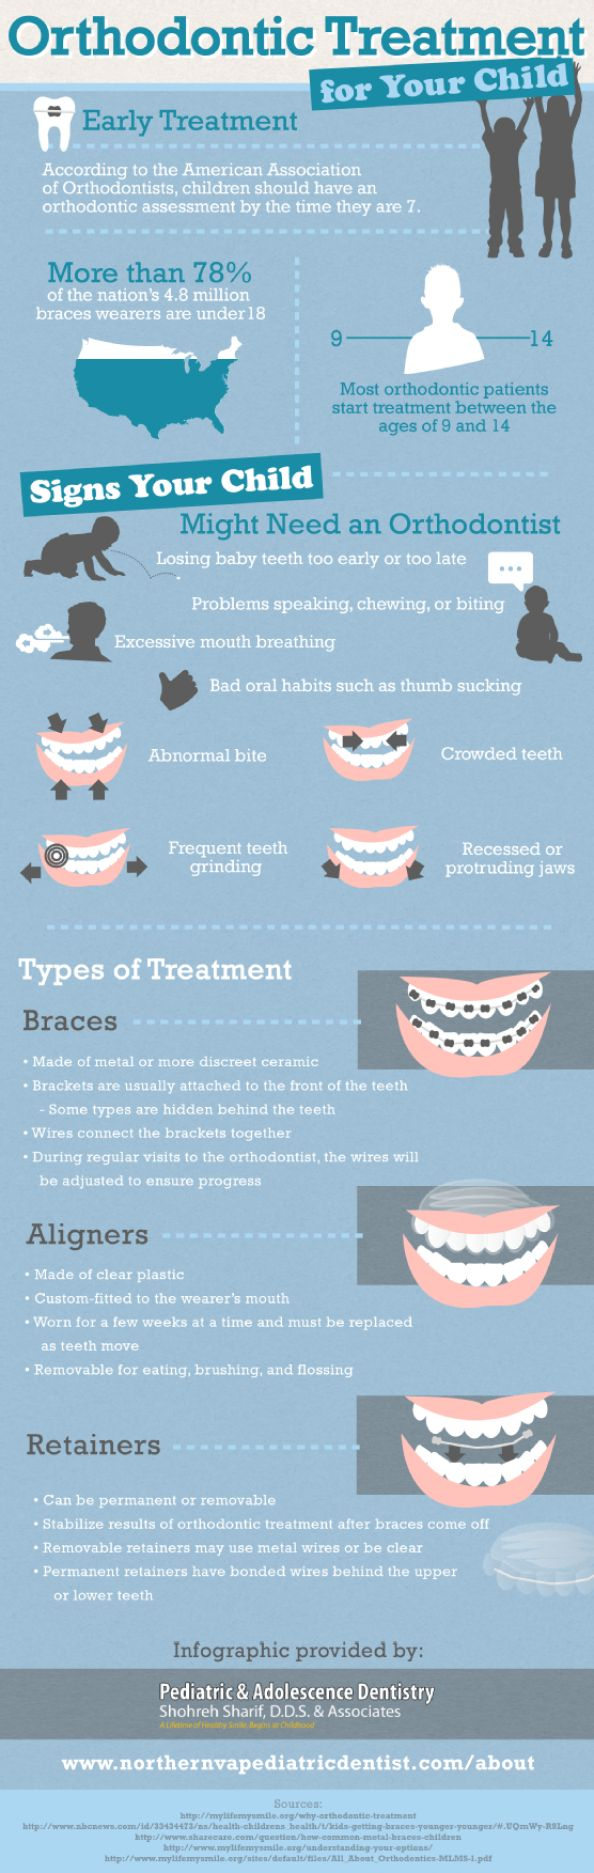 Petite Dental & Orthodontics (petitedental) on Pinterest